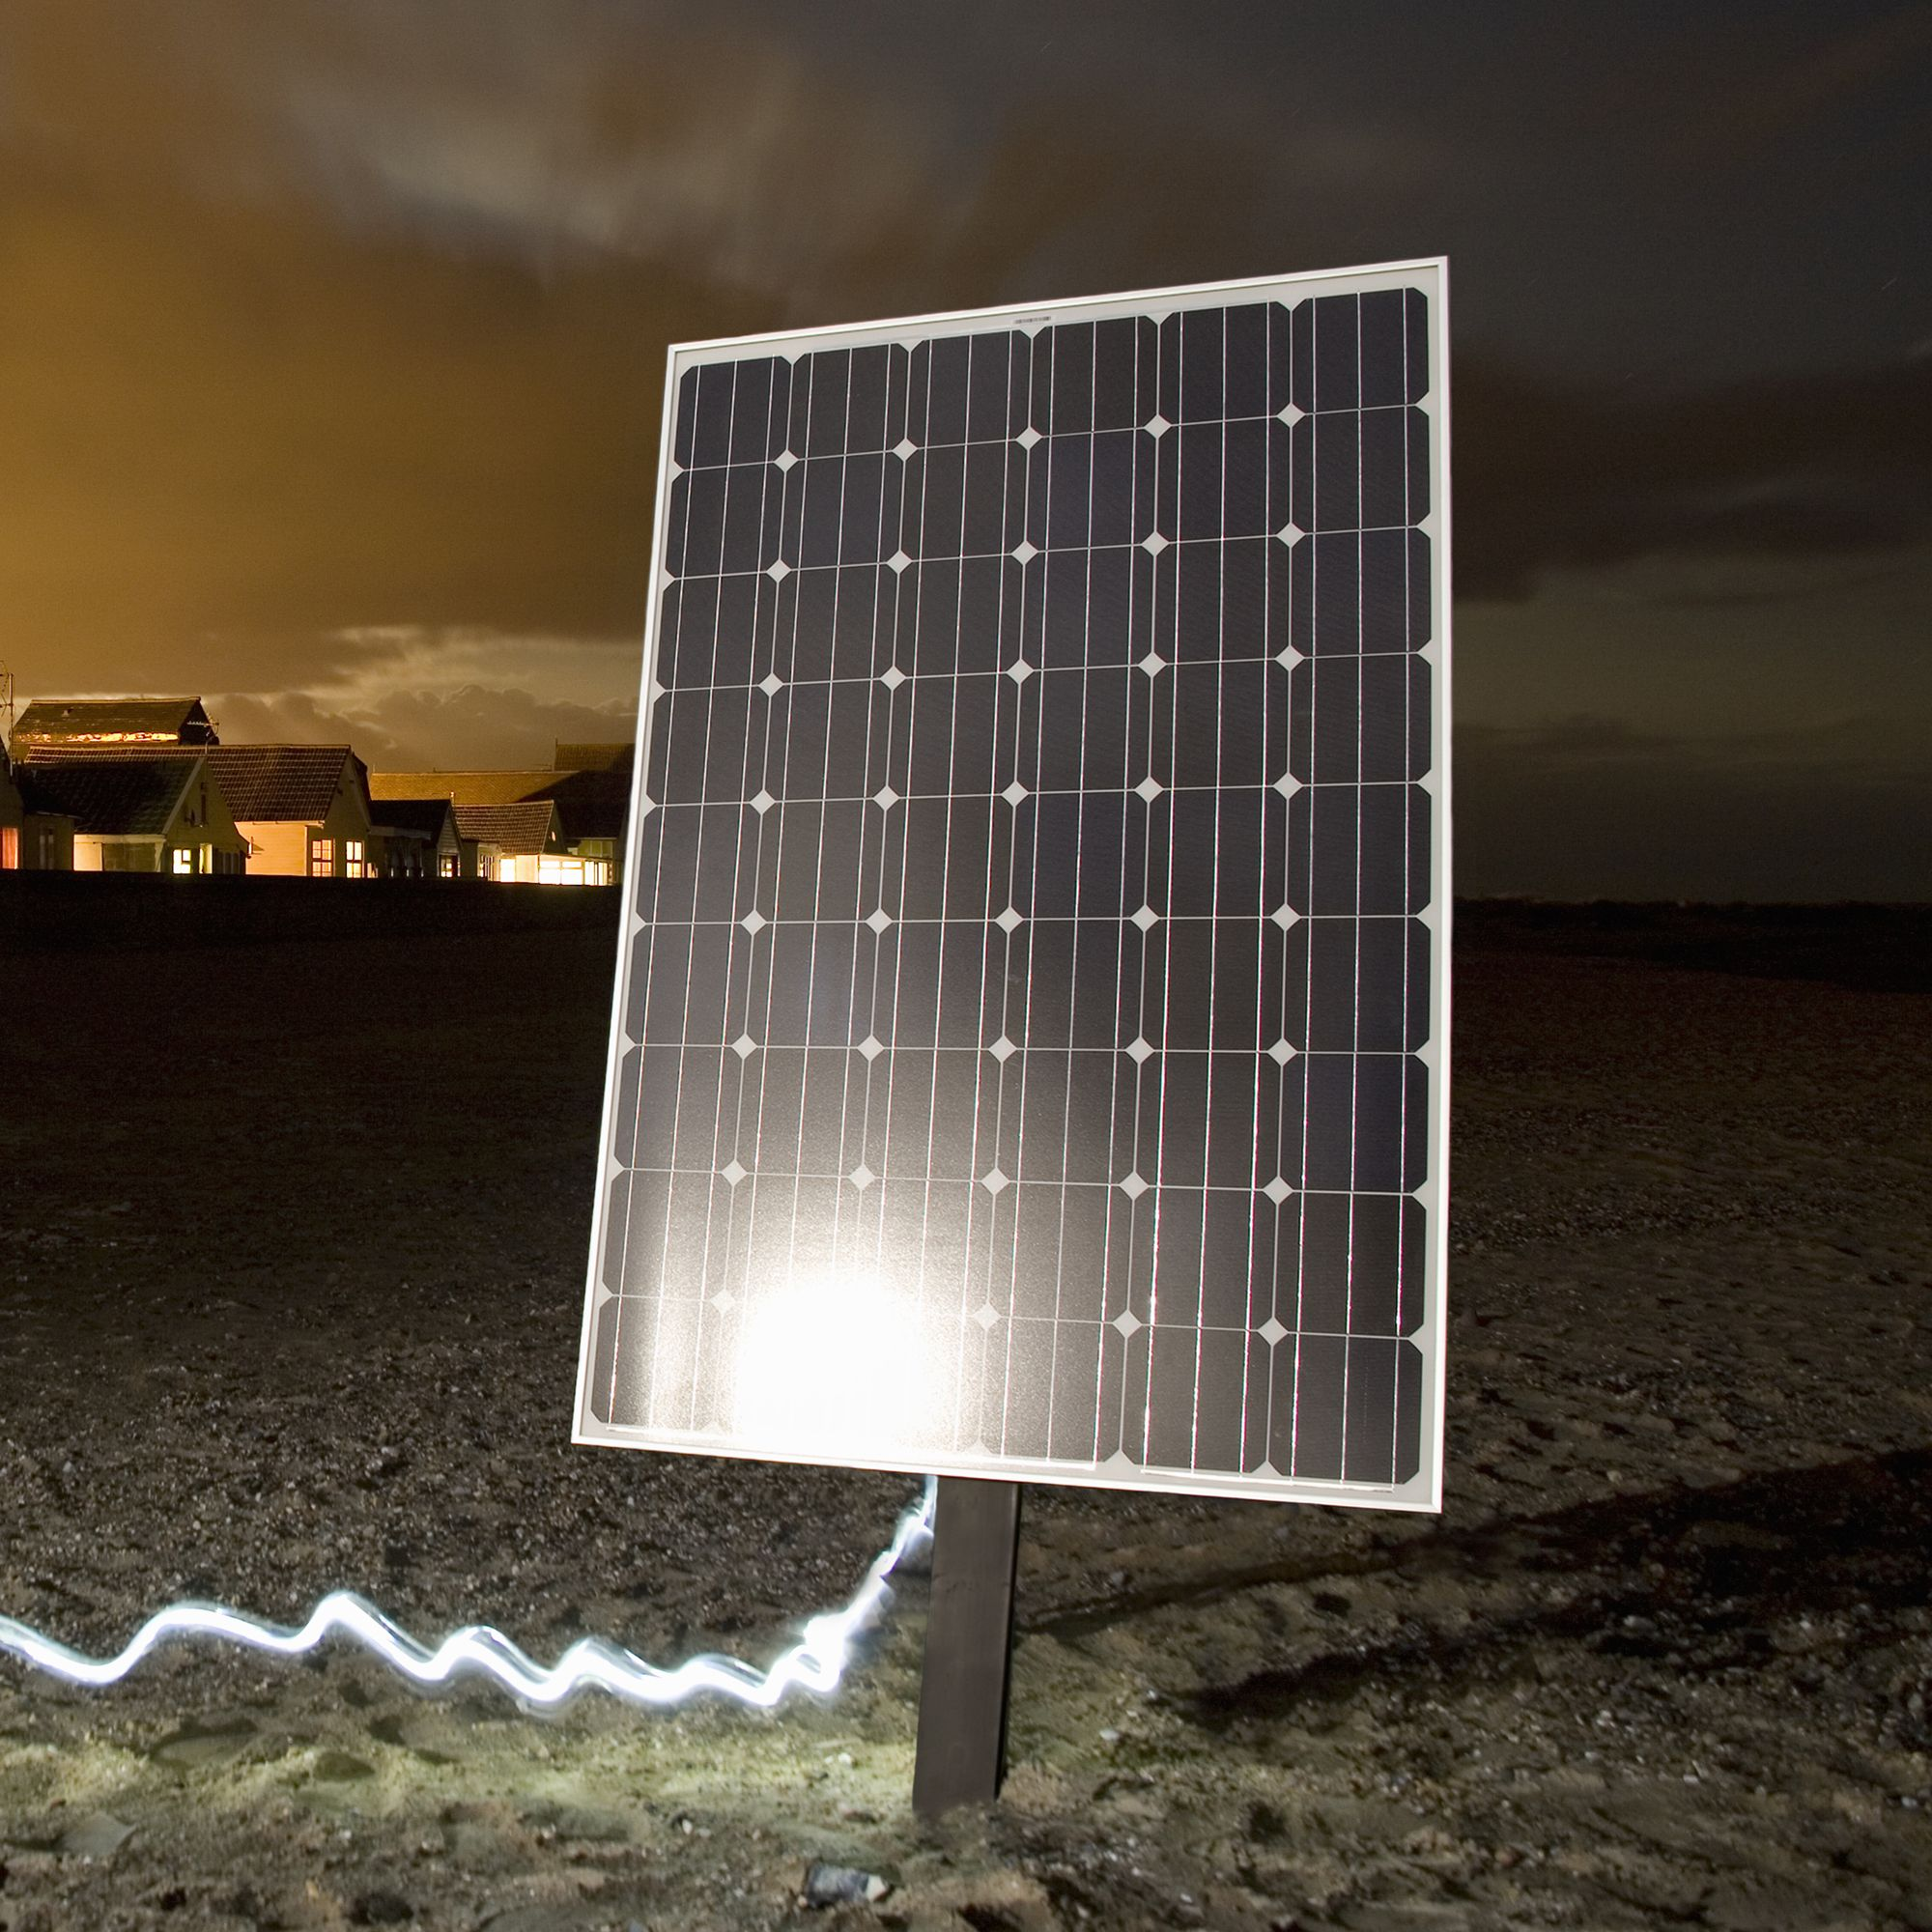 How Reverse Solar Panels Could Generate Power at Night